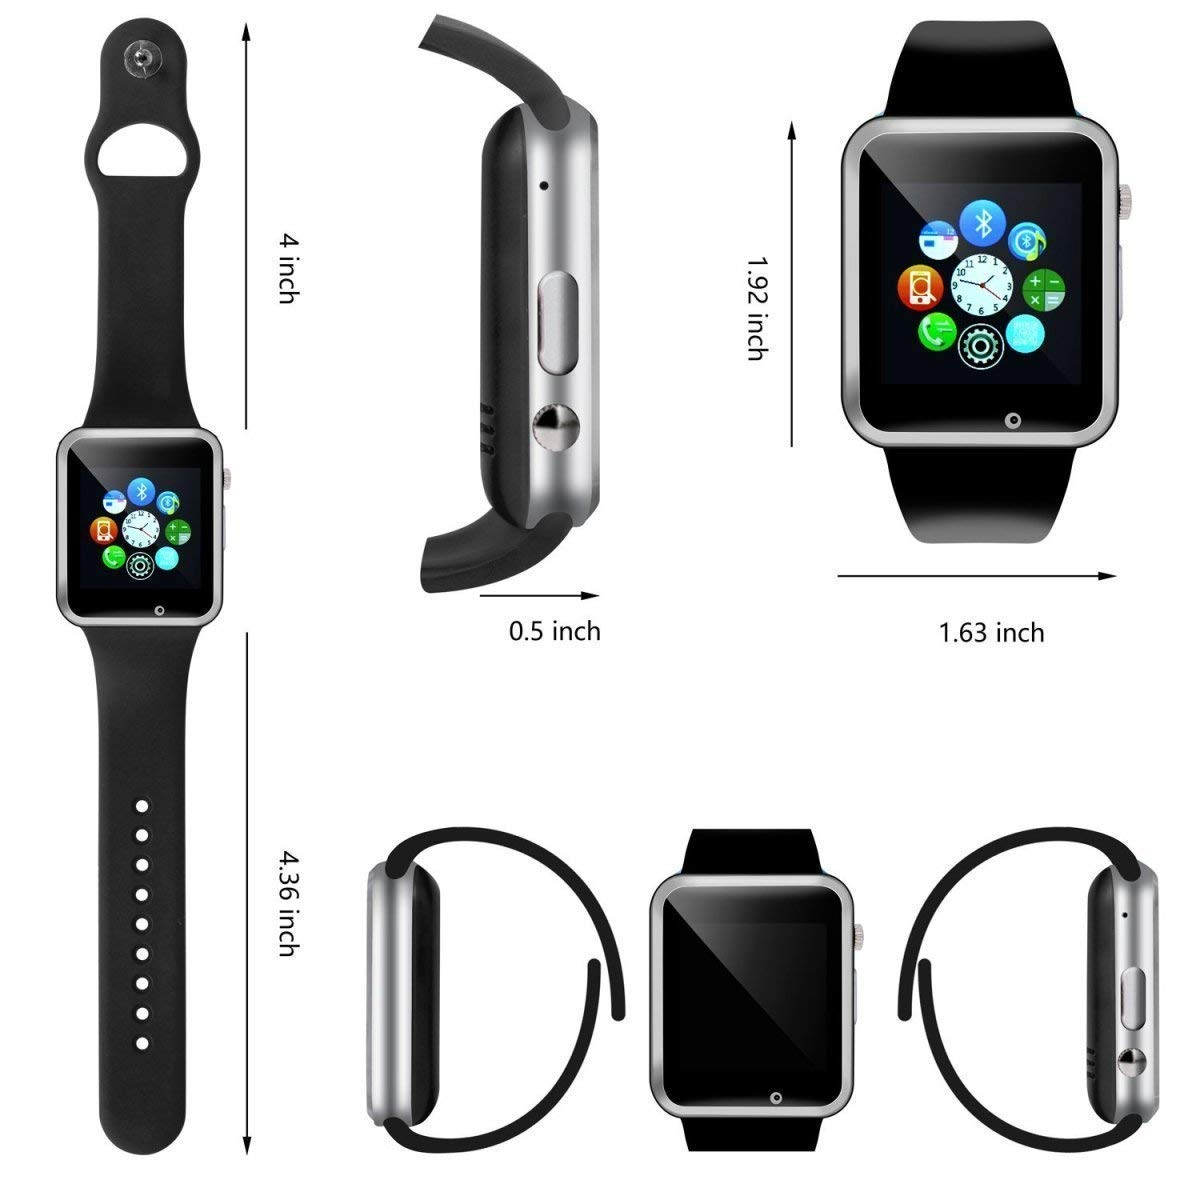 Smart Watch Fitness Tracker, Qidoou Bluetooth Sport Watch Touch Screen Camera Pedometer Sleep Monitor Call/Message Reminder Music Player Anti-Lost Compatible Android and iOS (Black-2)